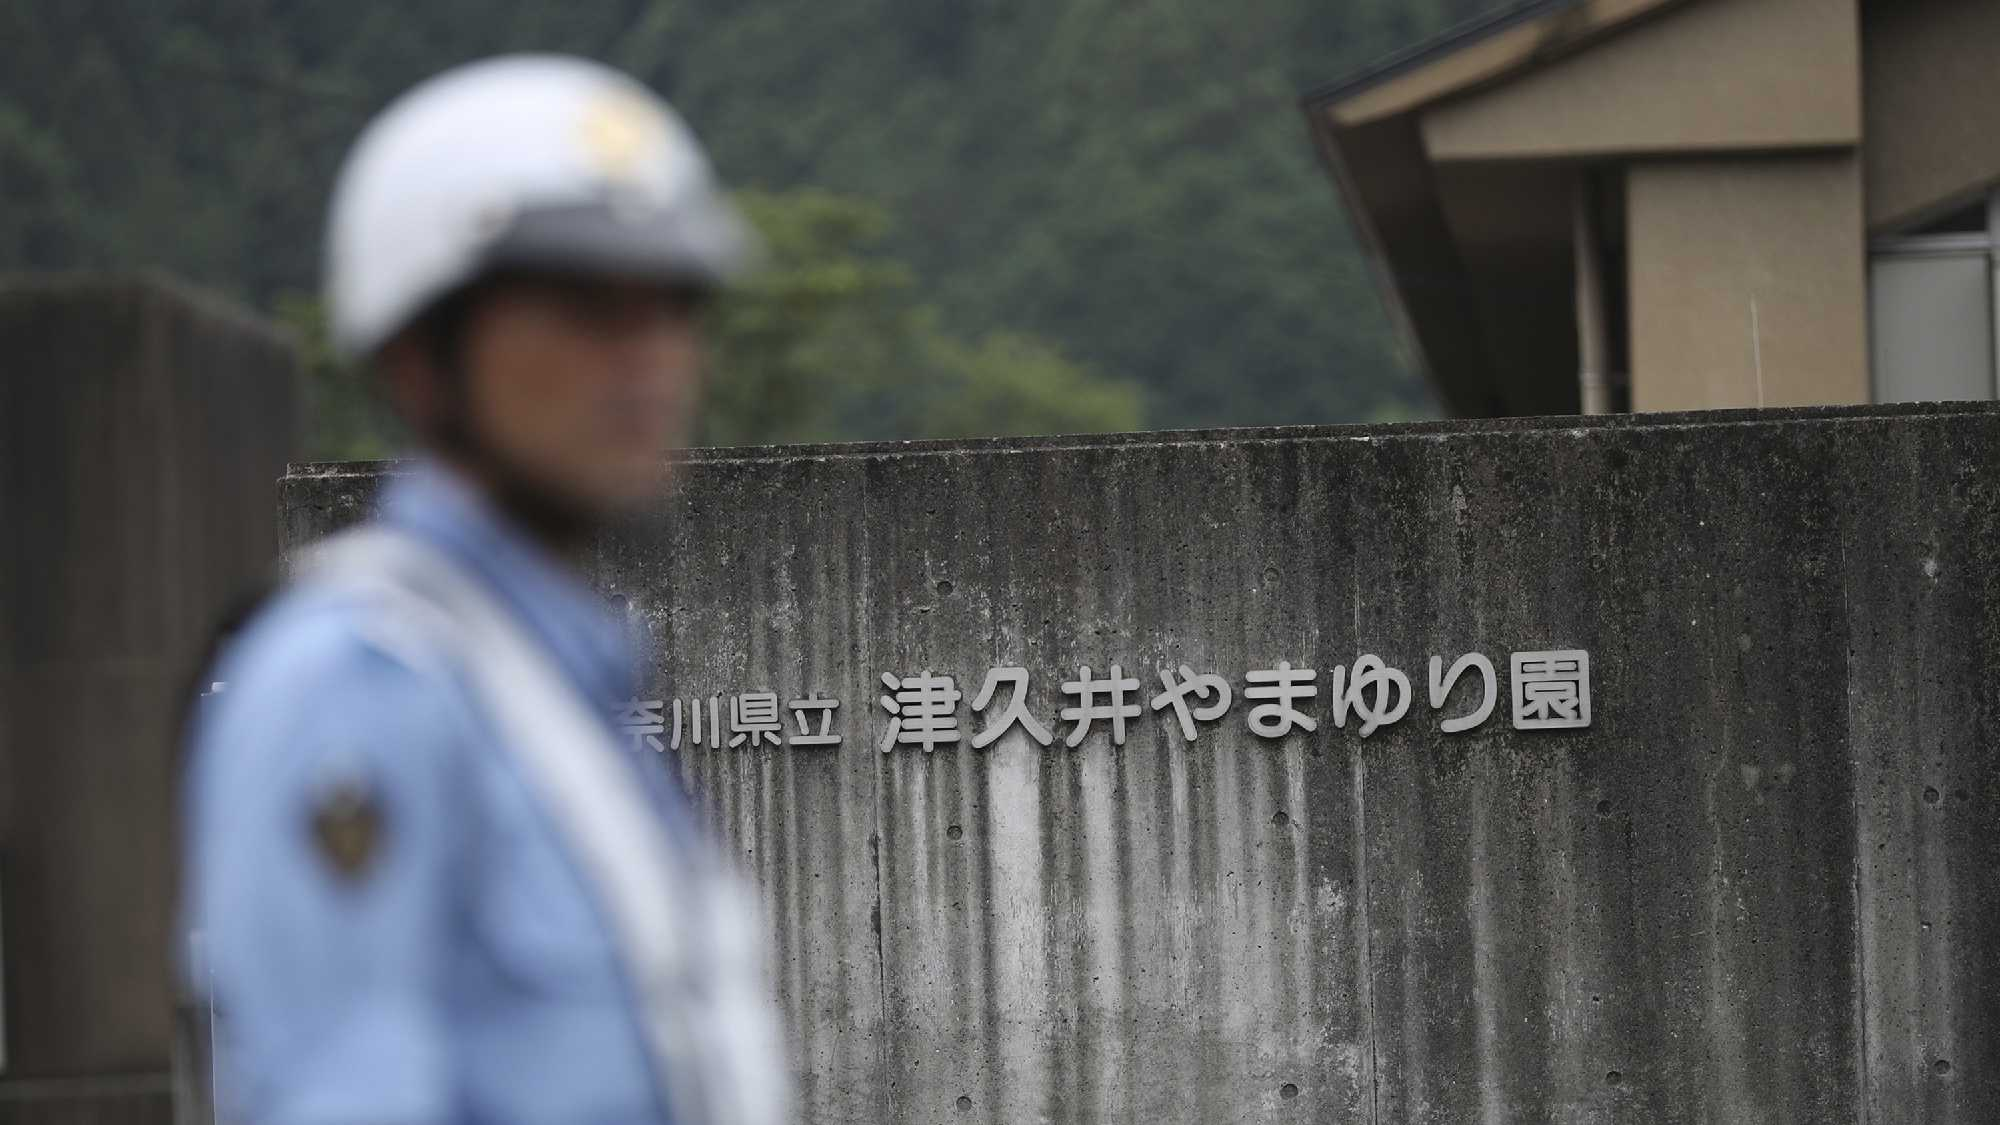 A police officer stands guard at the gate of Tsukui Yamayuri-en, a facility for the handicapped where a number of people were killed and dozens injured in a knife attack in Sagamihara, outside Tokyo Tuesday, July 26, 2016. Police said they responded to a call about 2:30 a.m. Tuesday from an employee saying something horrible was happening at the facility. A man turned himself in at a police station about two hours later, police said.